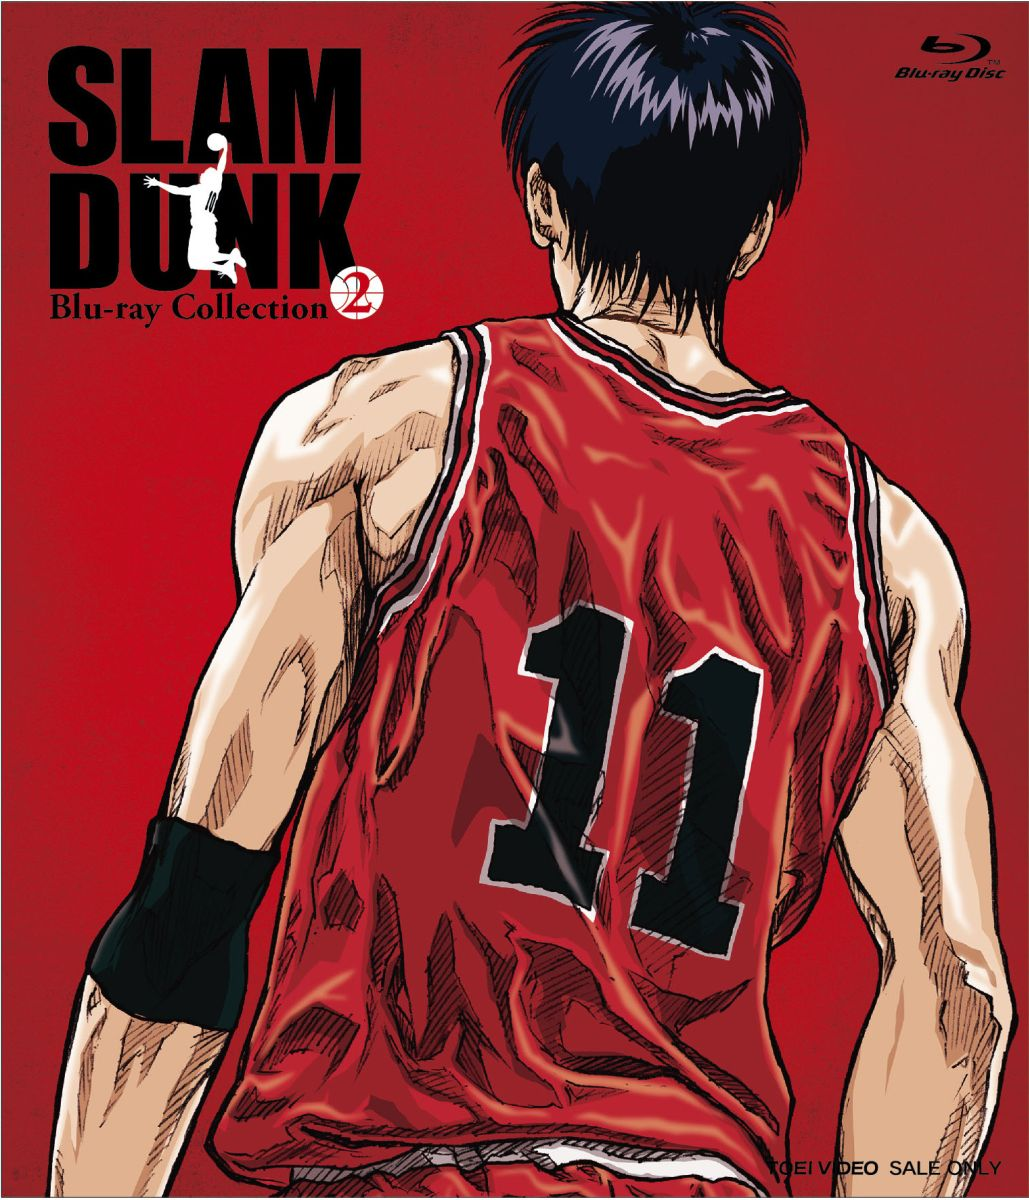 SLAM DUNK Blu-ray Collection 2【Blu-ray】画像